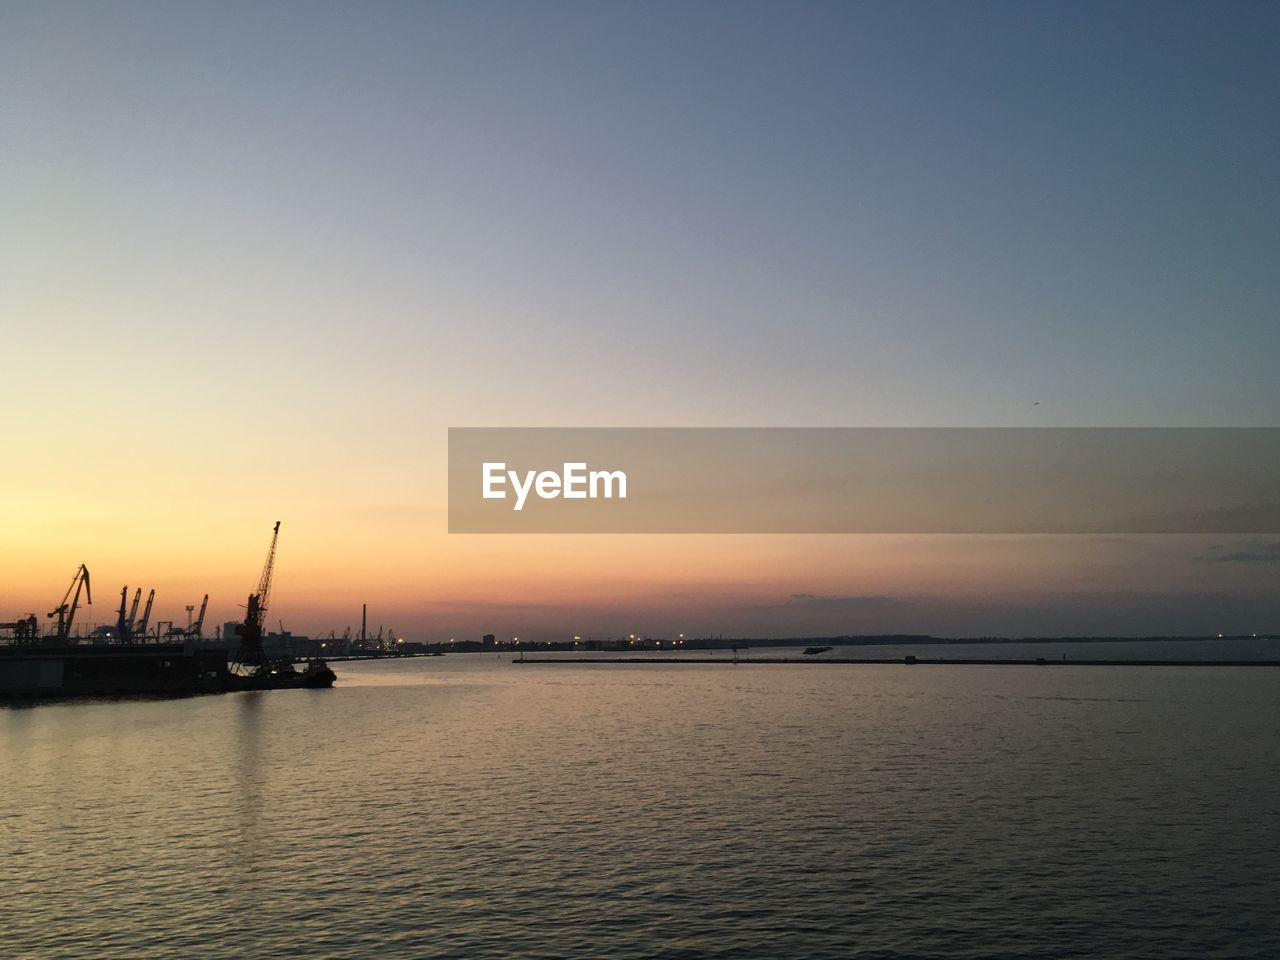 sunset, water, nature, sea, beauty in nature, waterfront, scenics, silhouette, tranquility, tranquil scene, sky, nautical vessel, outdoors, no people, horizon over water, day, drilling rig